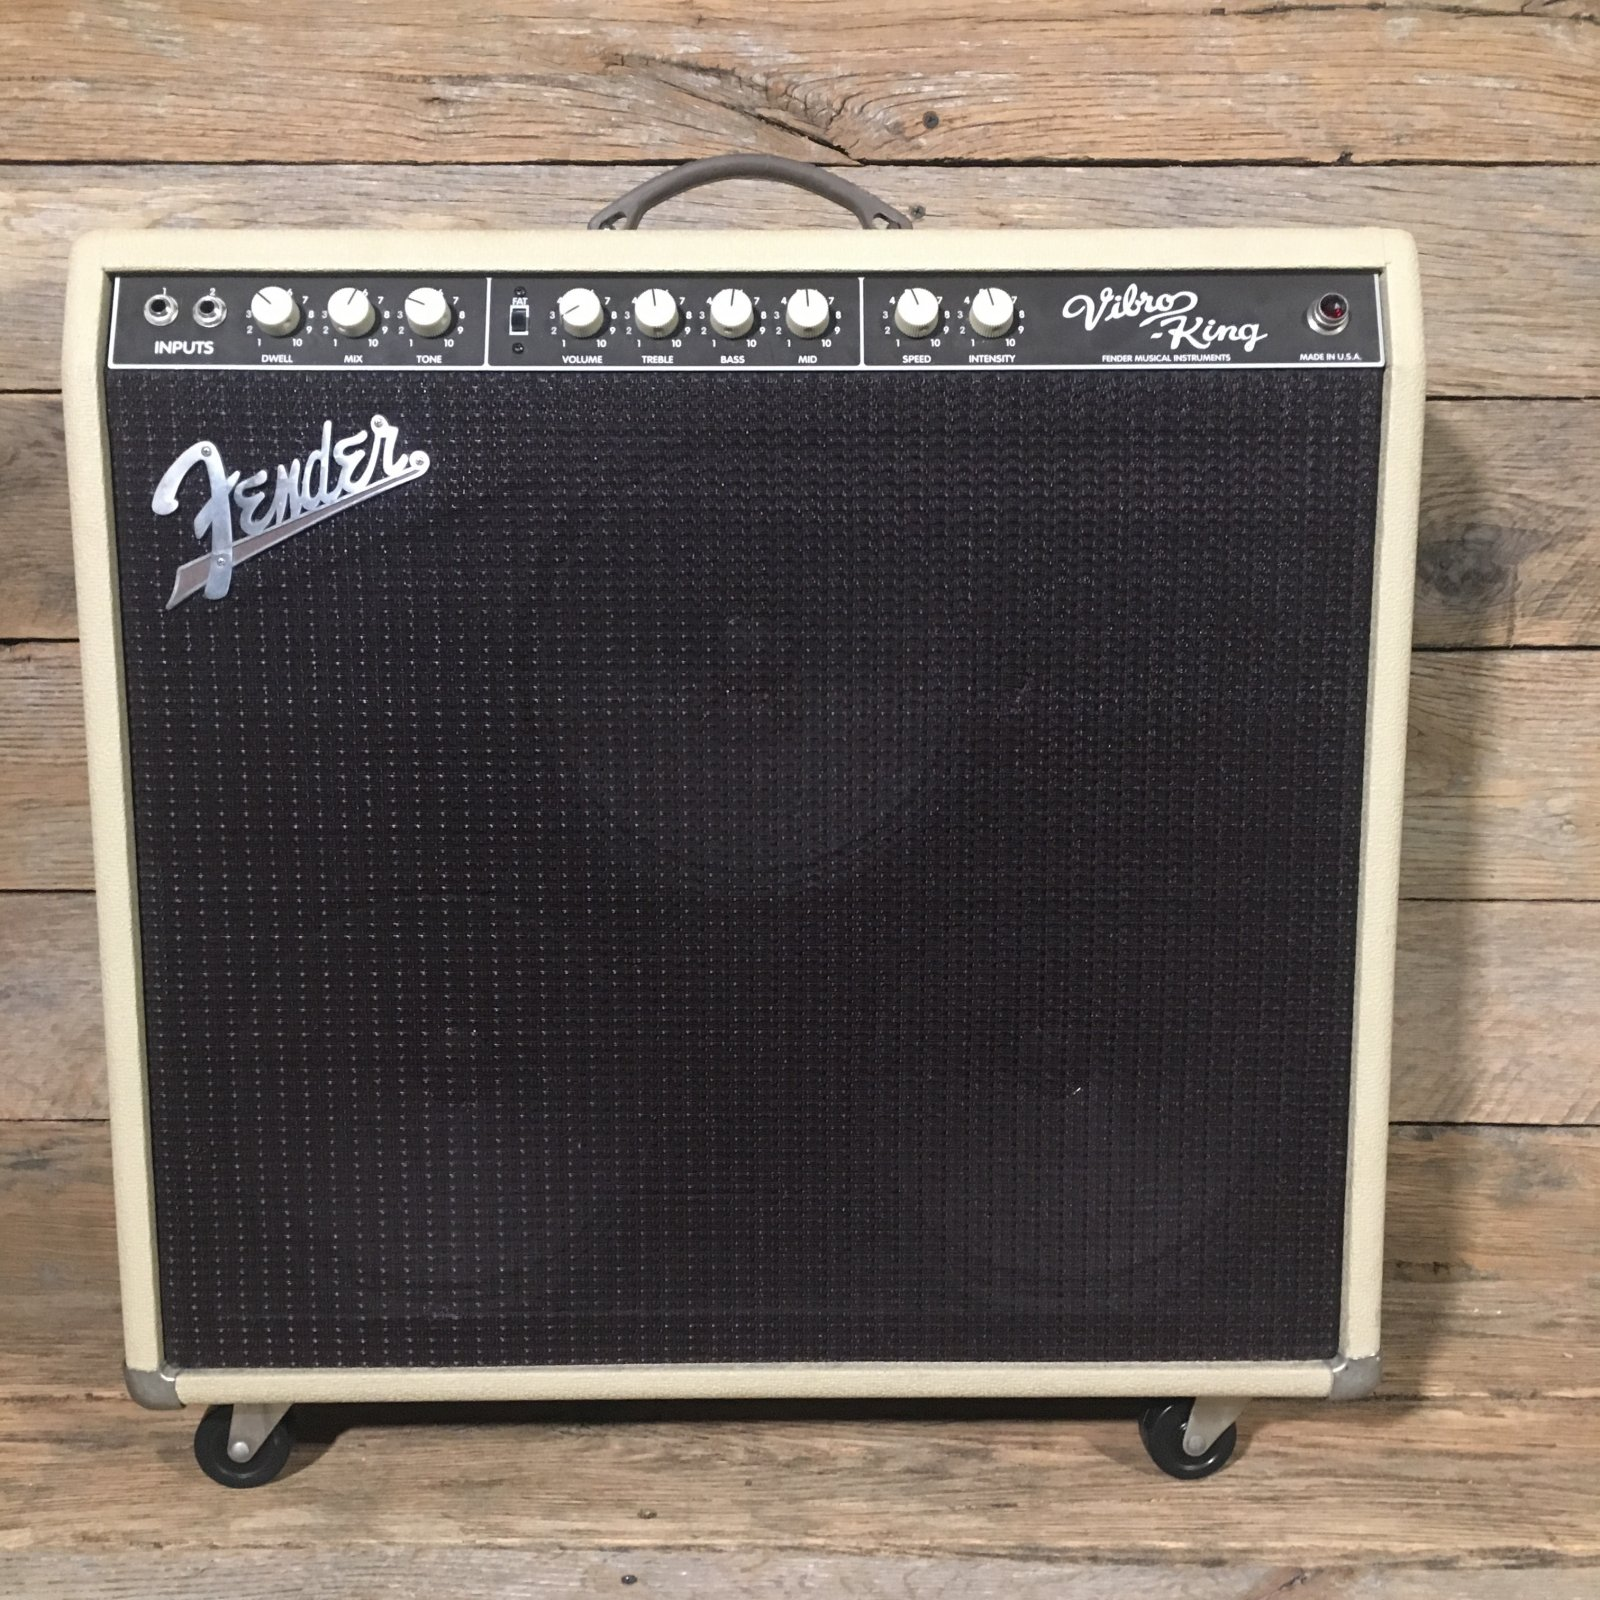 Used Fender Vibro King Amp W/Cover